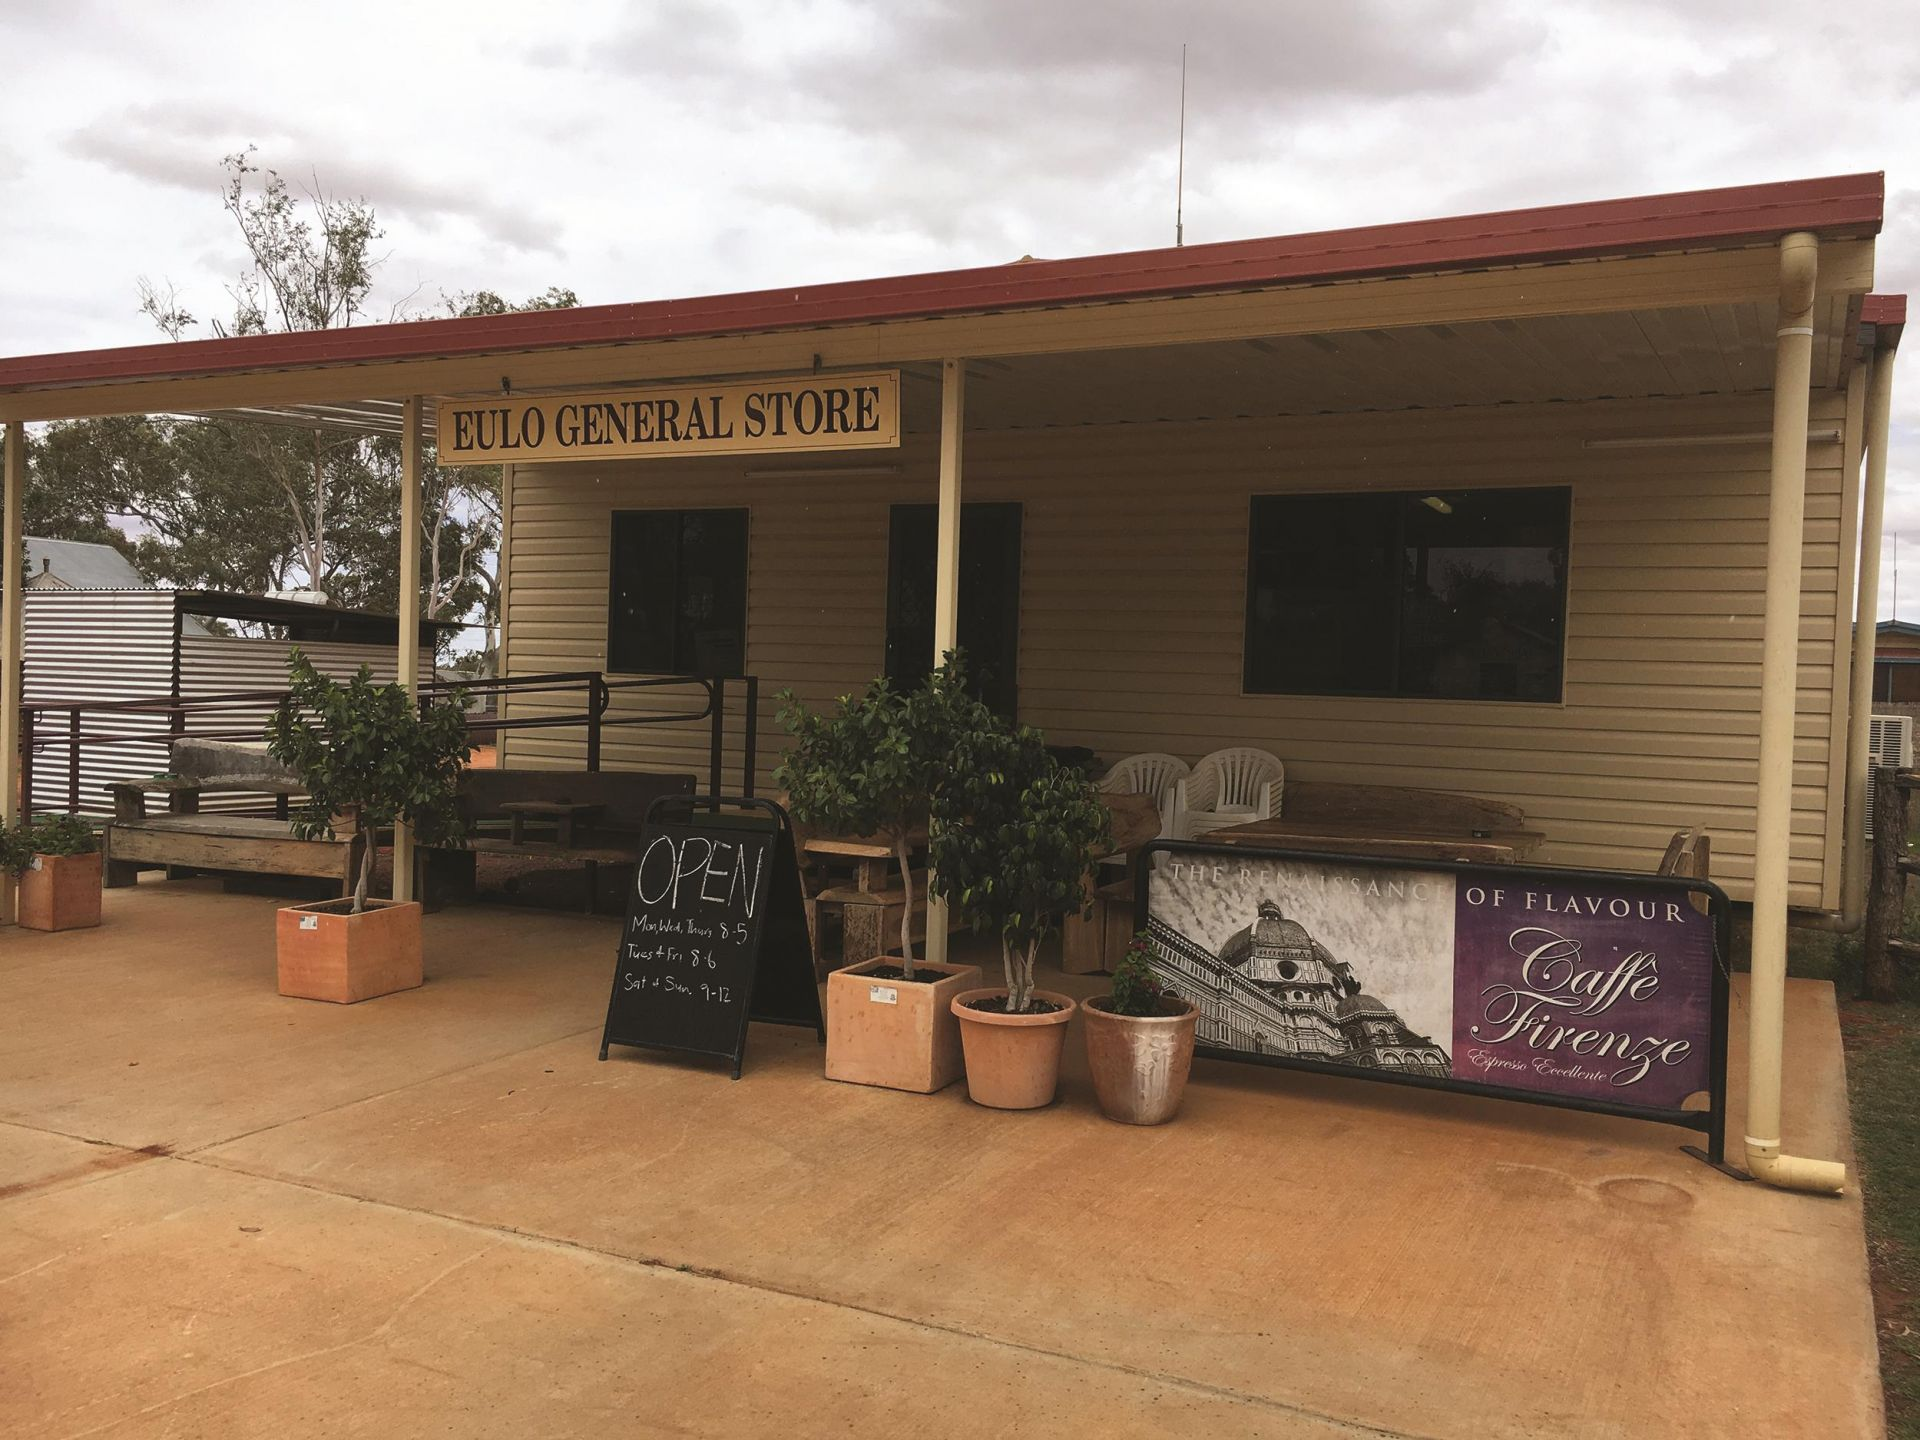 Leasehold General Store & Fuel Stop - Eulo, SW Qld